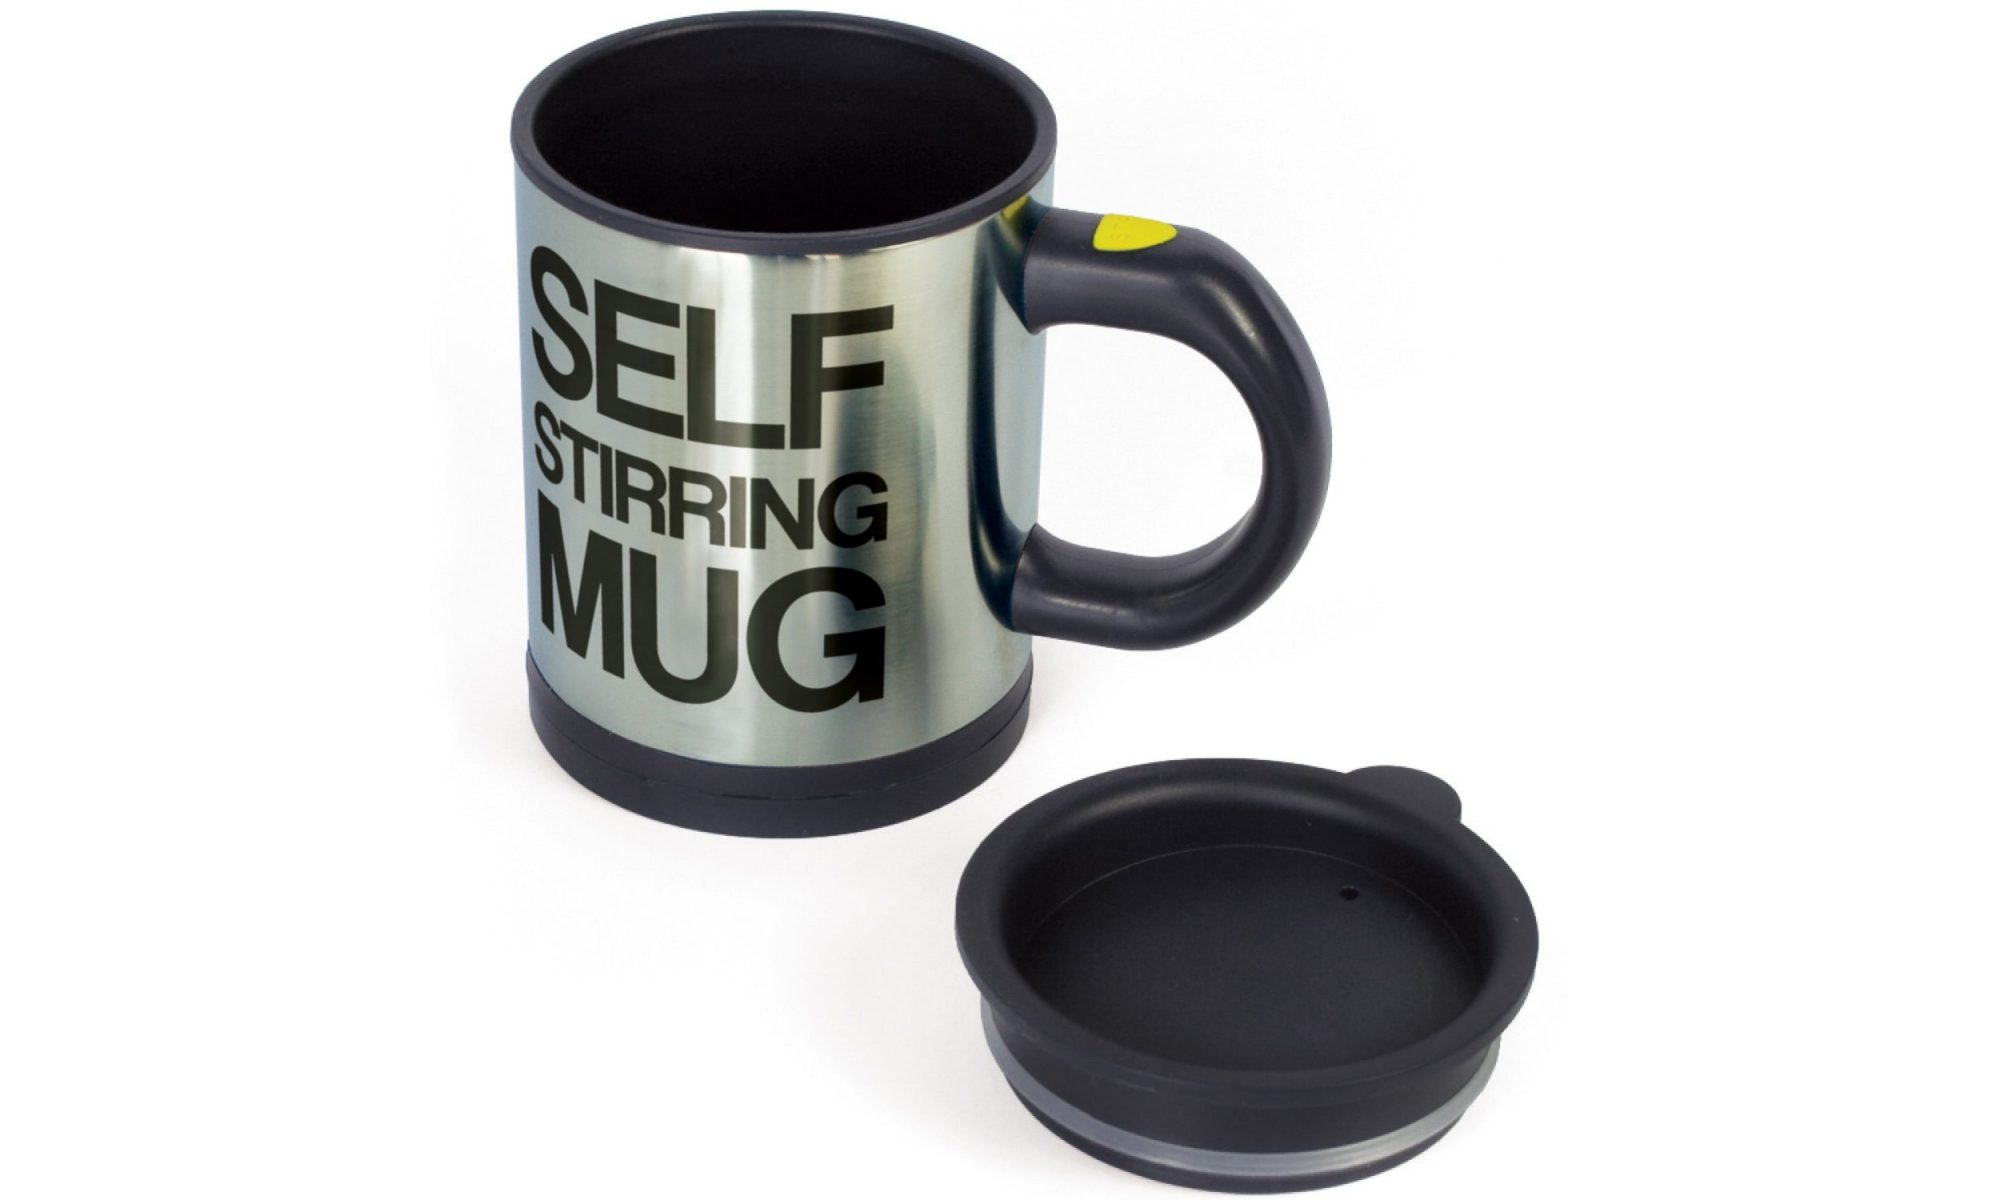 EC: A Self-Stirring Mug Is the Gift You Buy Your Lazy Self